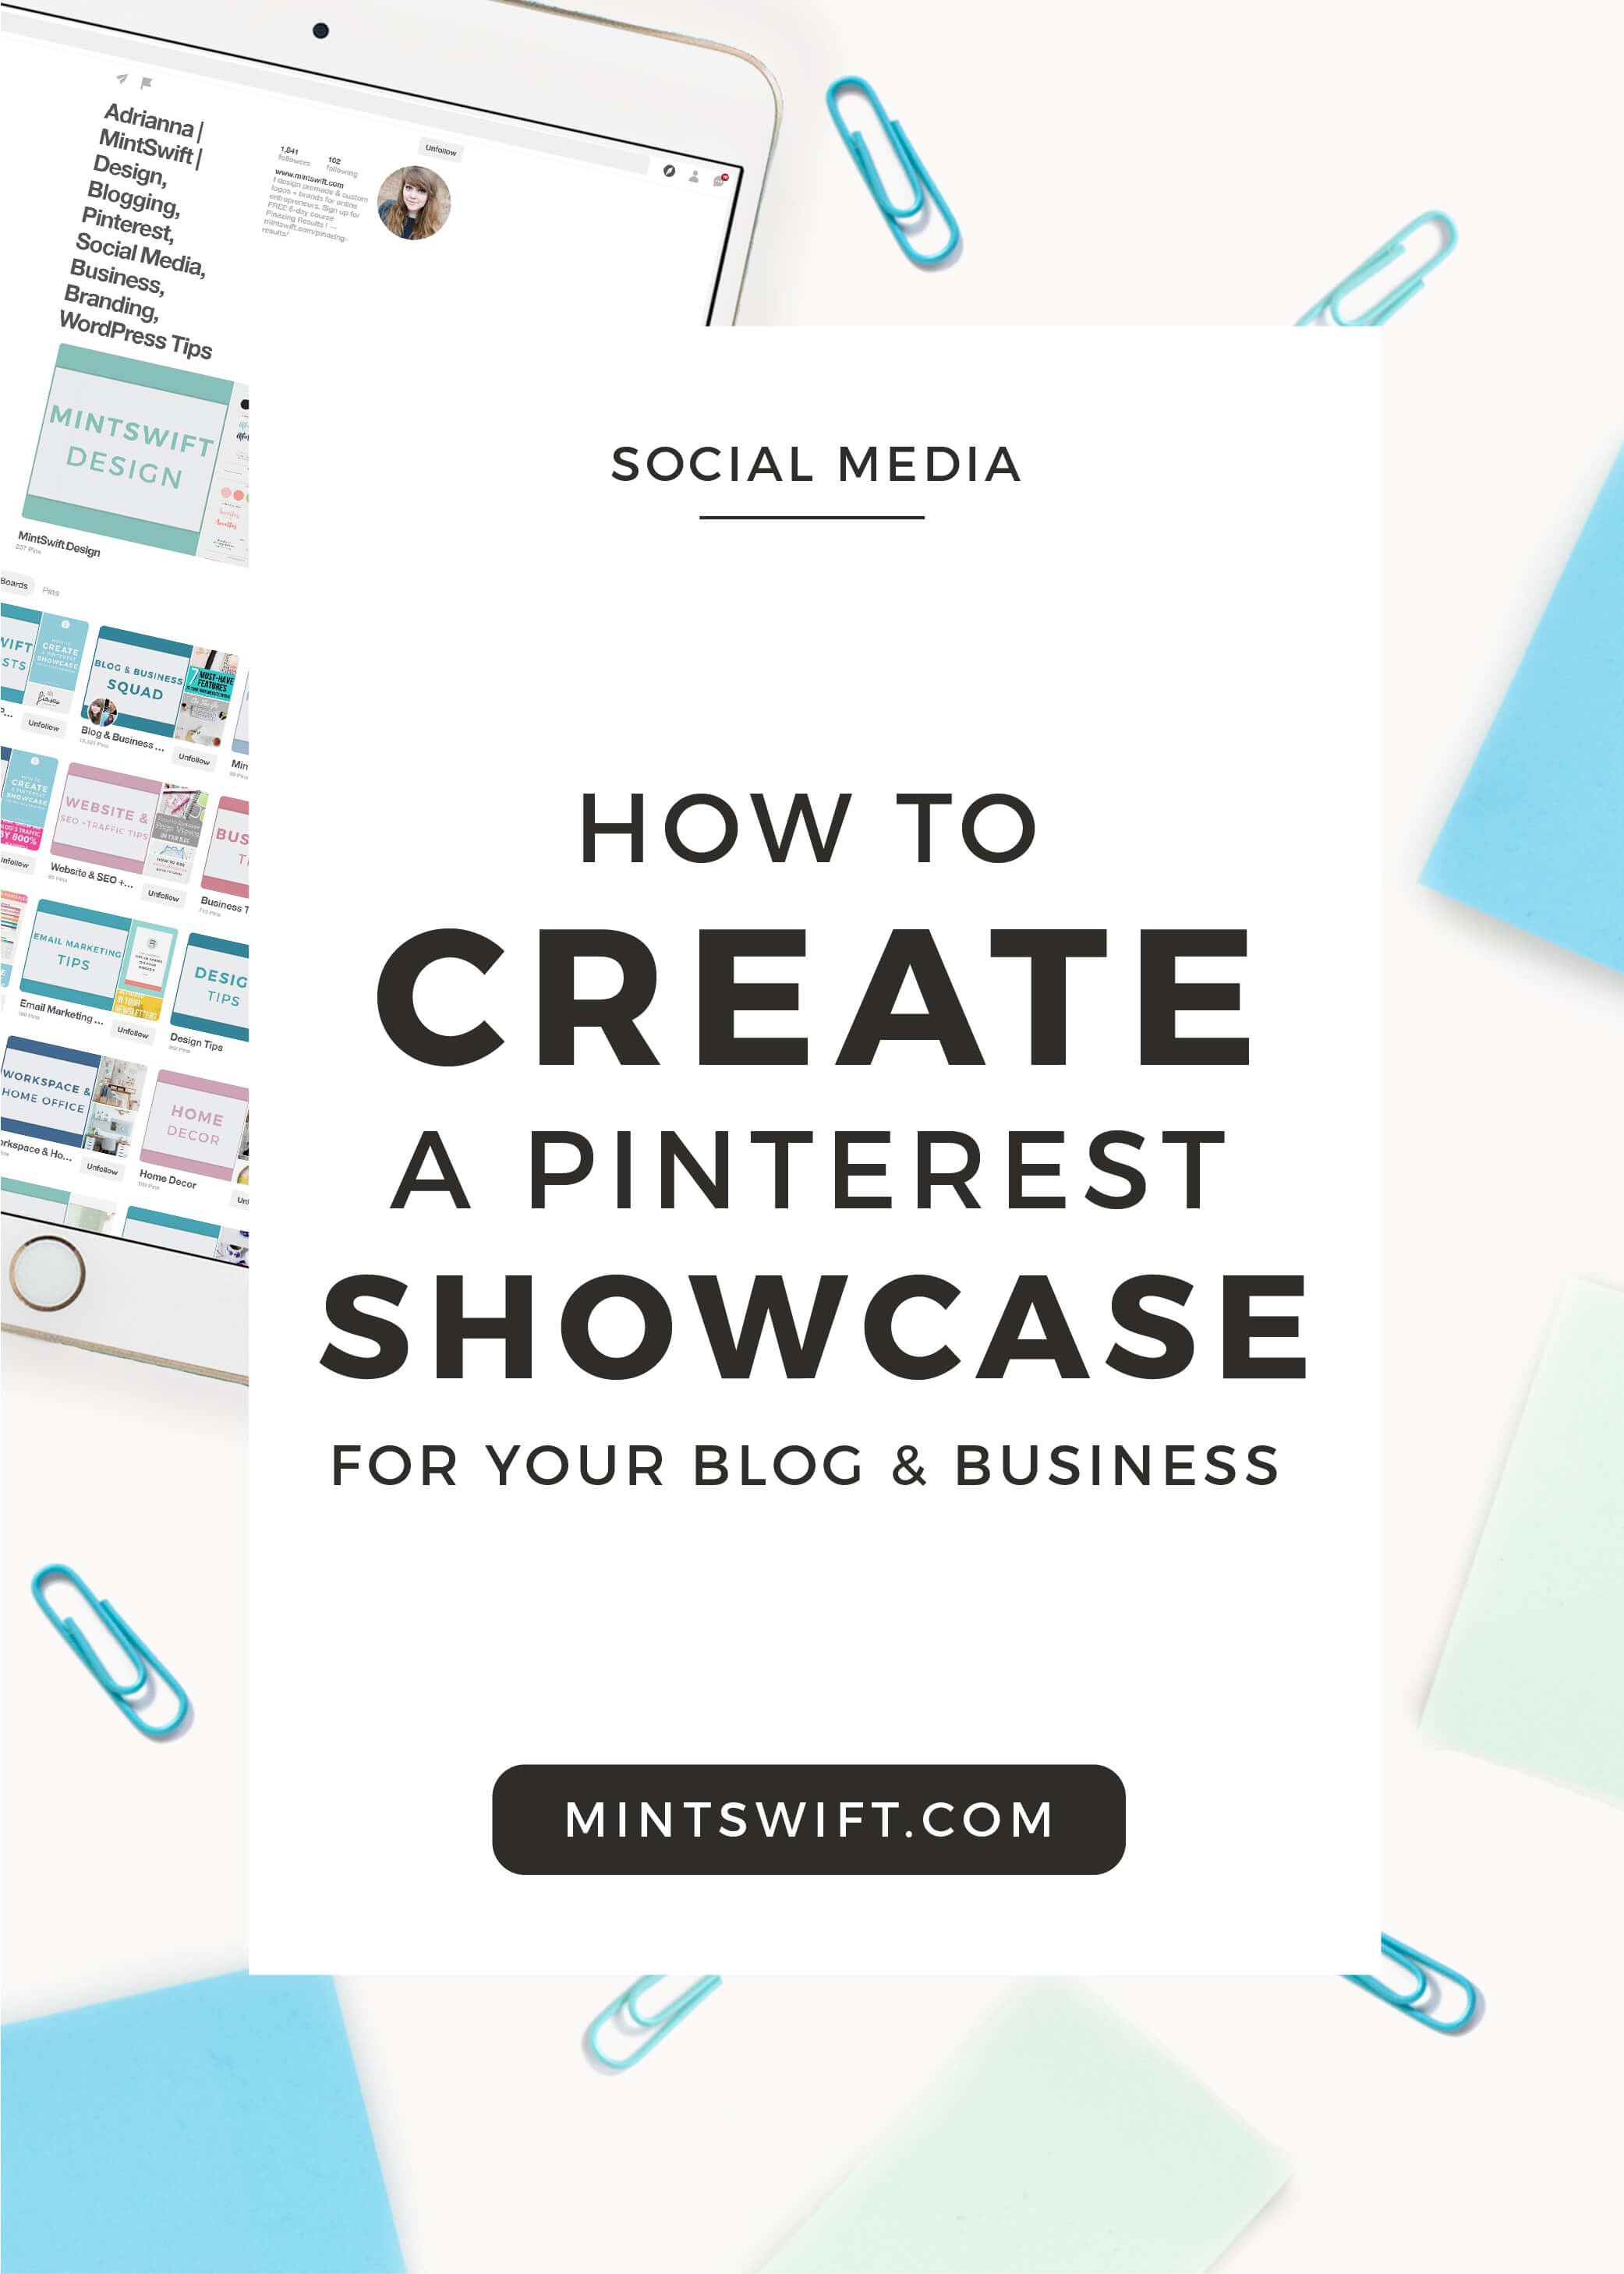 How To Create A Pinterest Showcase For Your Blog